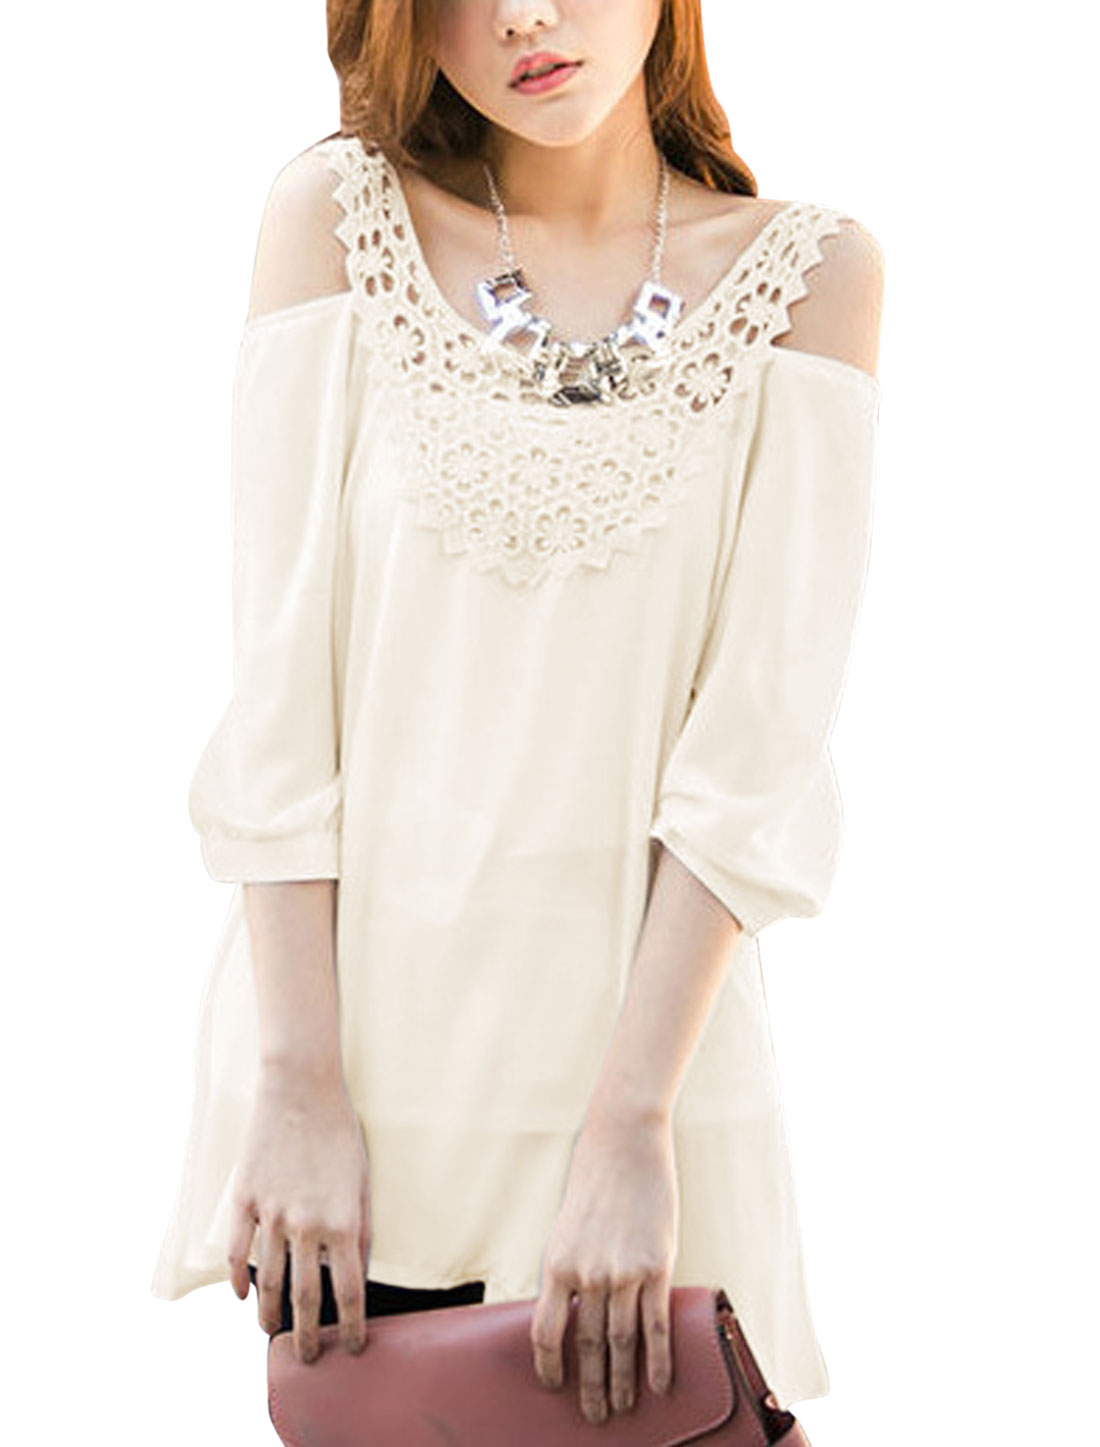 Lady Shoulder Strap Crochet Panel Cut Out Shoulder Tunic Top Beige XS